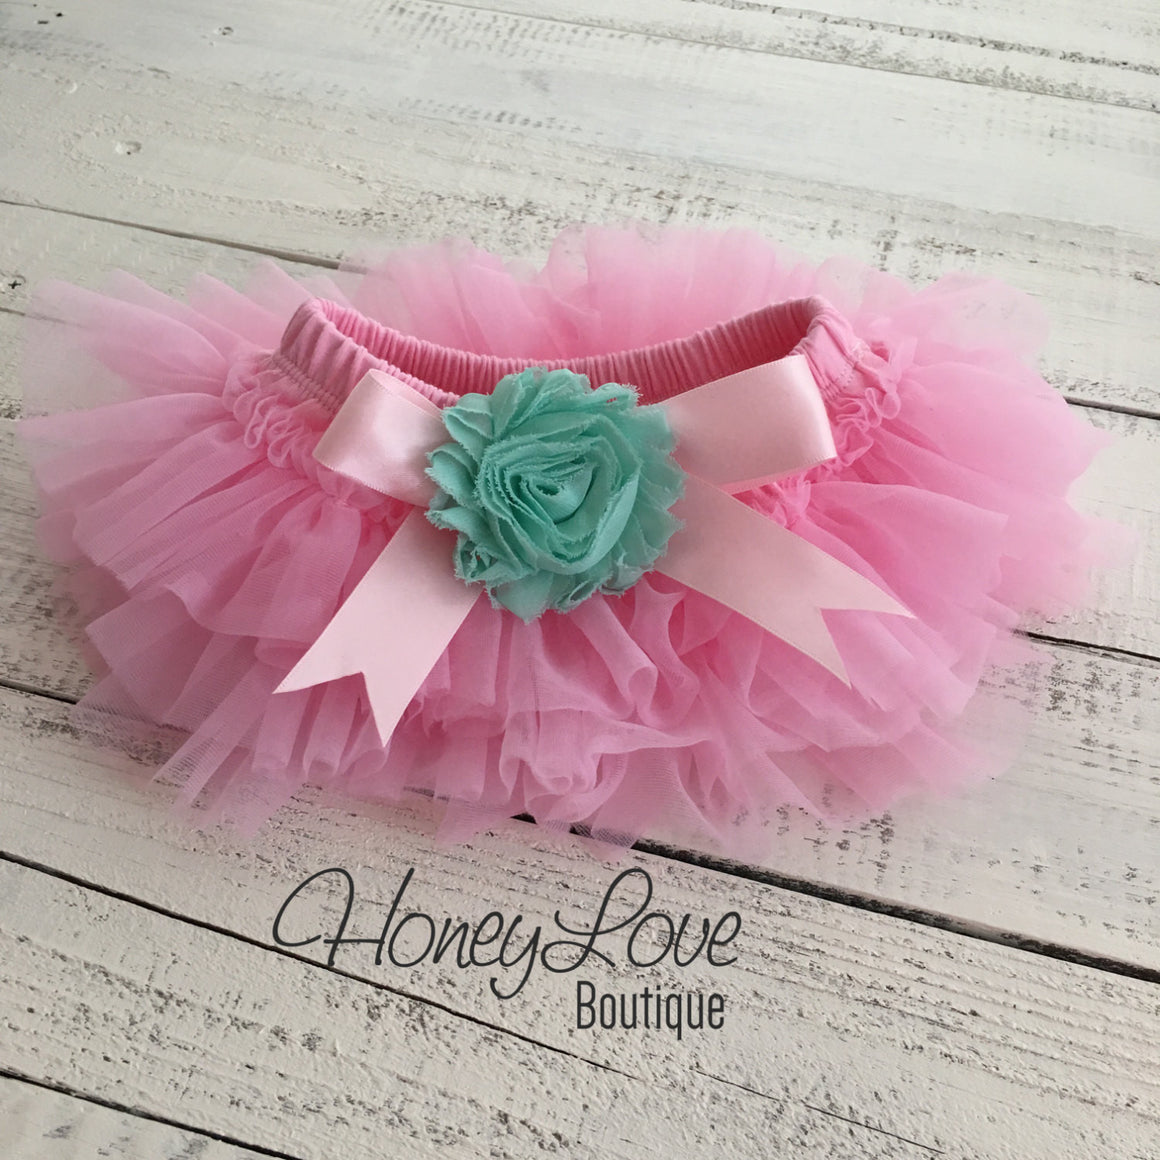 PERSONALIZED Name Outfit - Light Pink and Silver Glitter - Mint/Aqua flower embellished tutu skirt bloomers - HoneyLoveBoutique